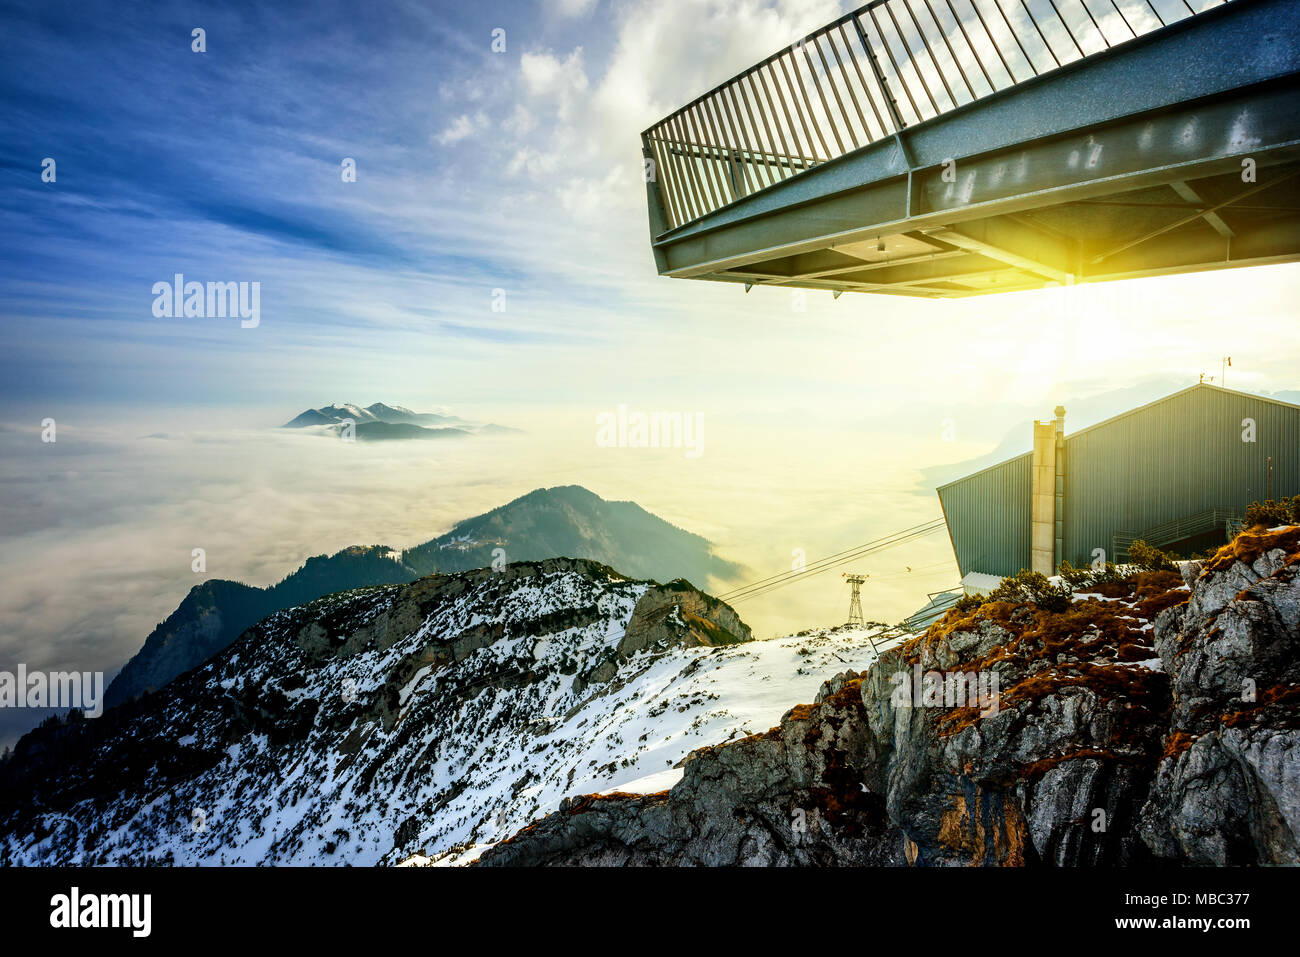 Panoramic view of beautiful winter mountain landscape. Observation platform Alpspix at Alpspitz mountain near Zugspitze. Germany - Stock Image